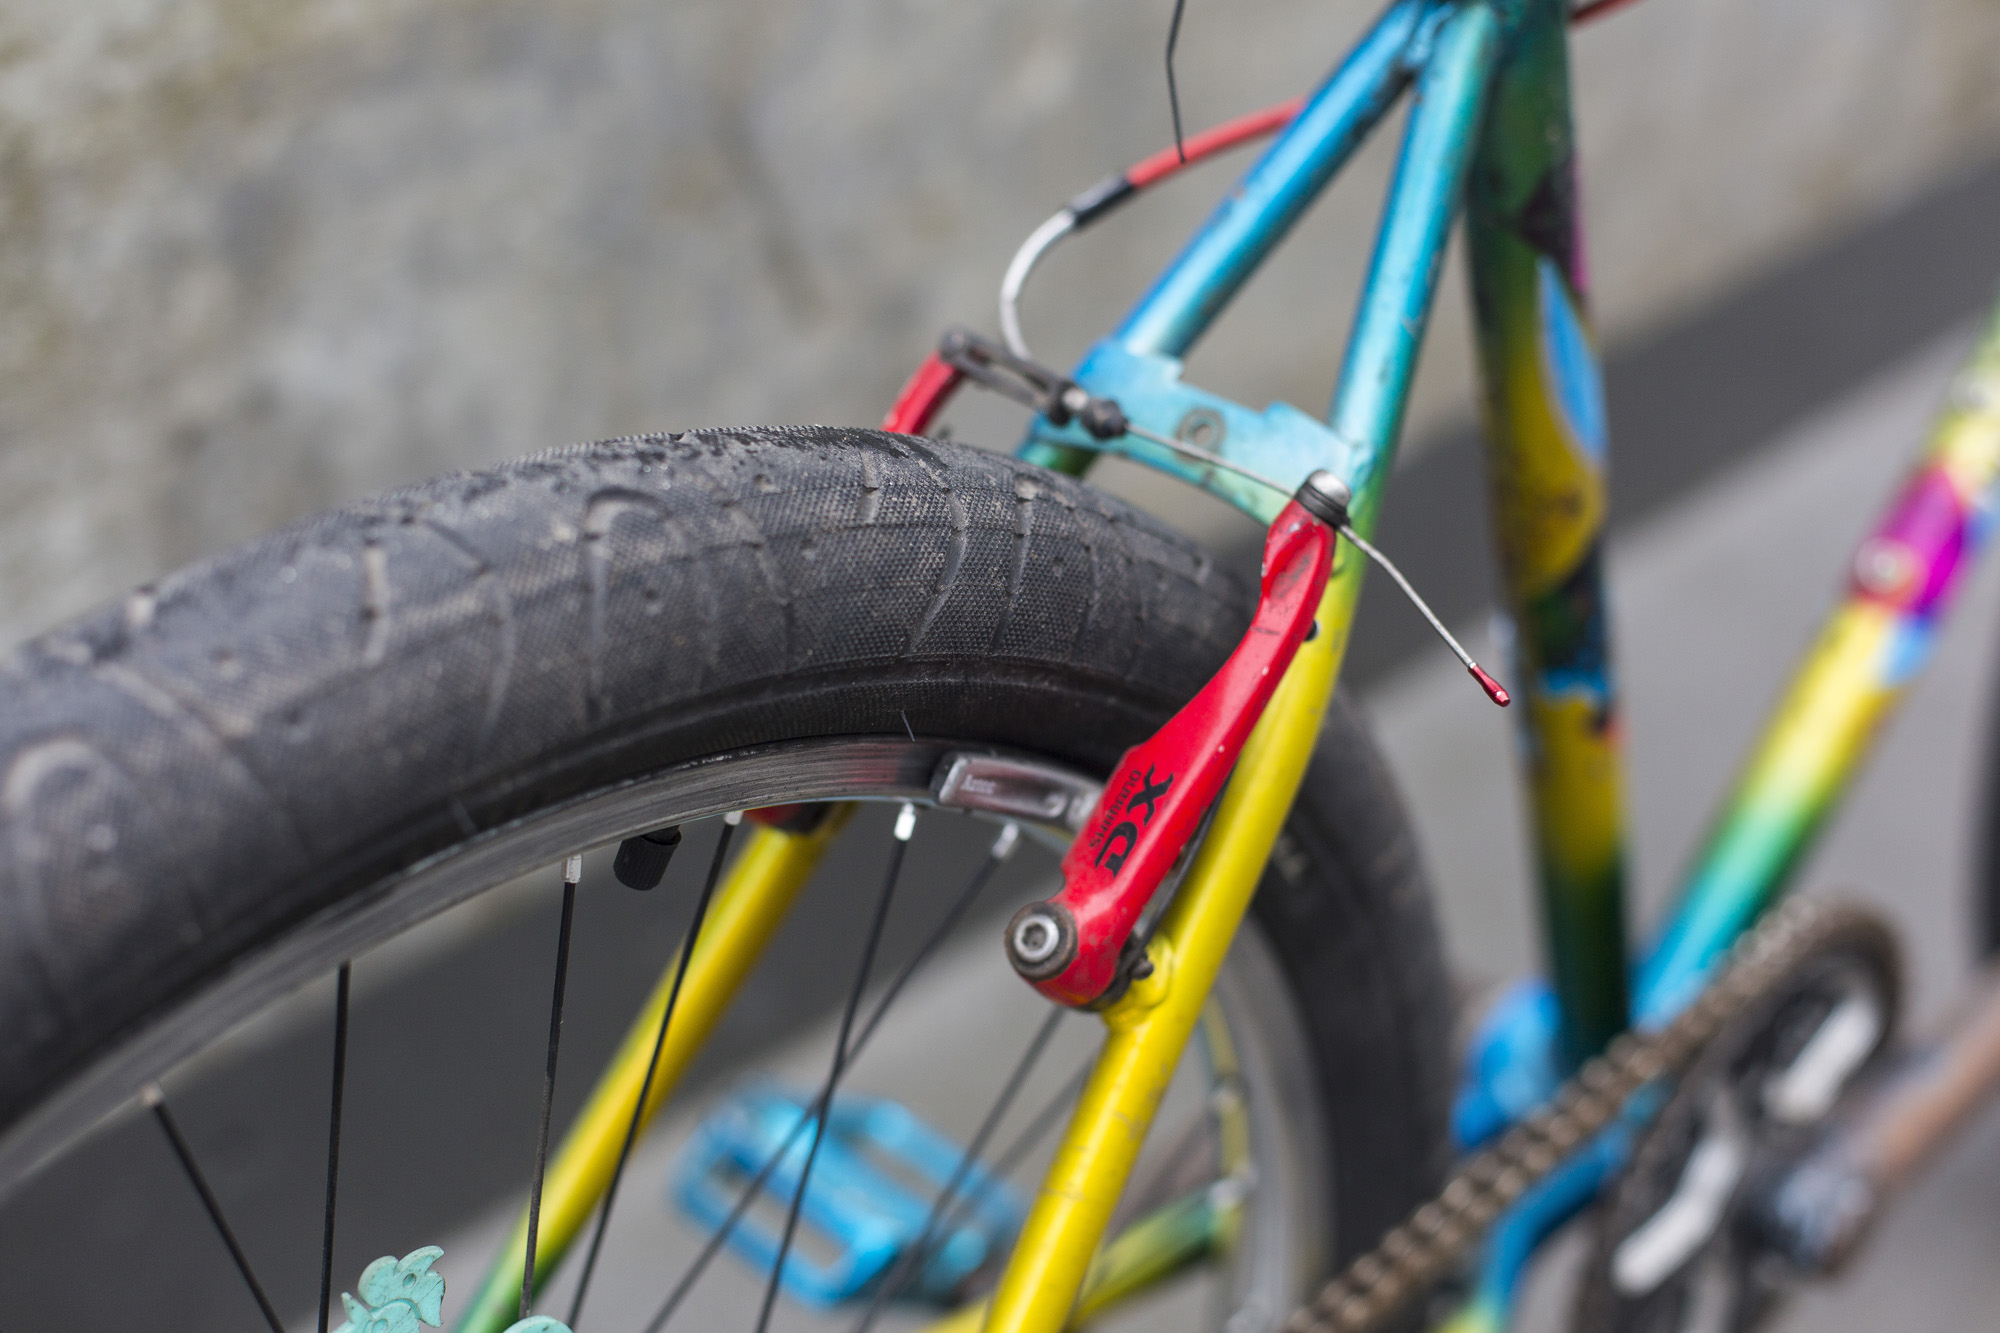 seabass-cycles-bikes-instore-5-february-2019-raleigh-cycles-mantis-00421.jpg